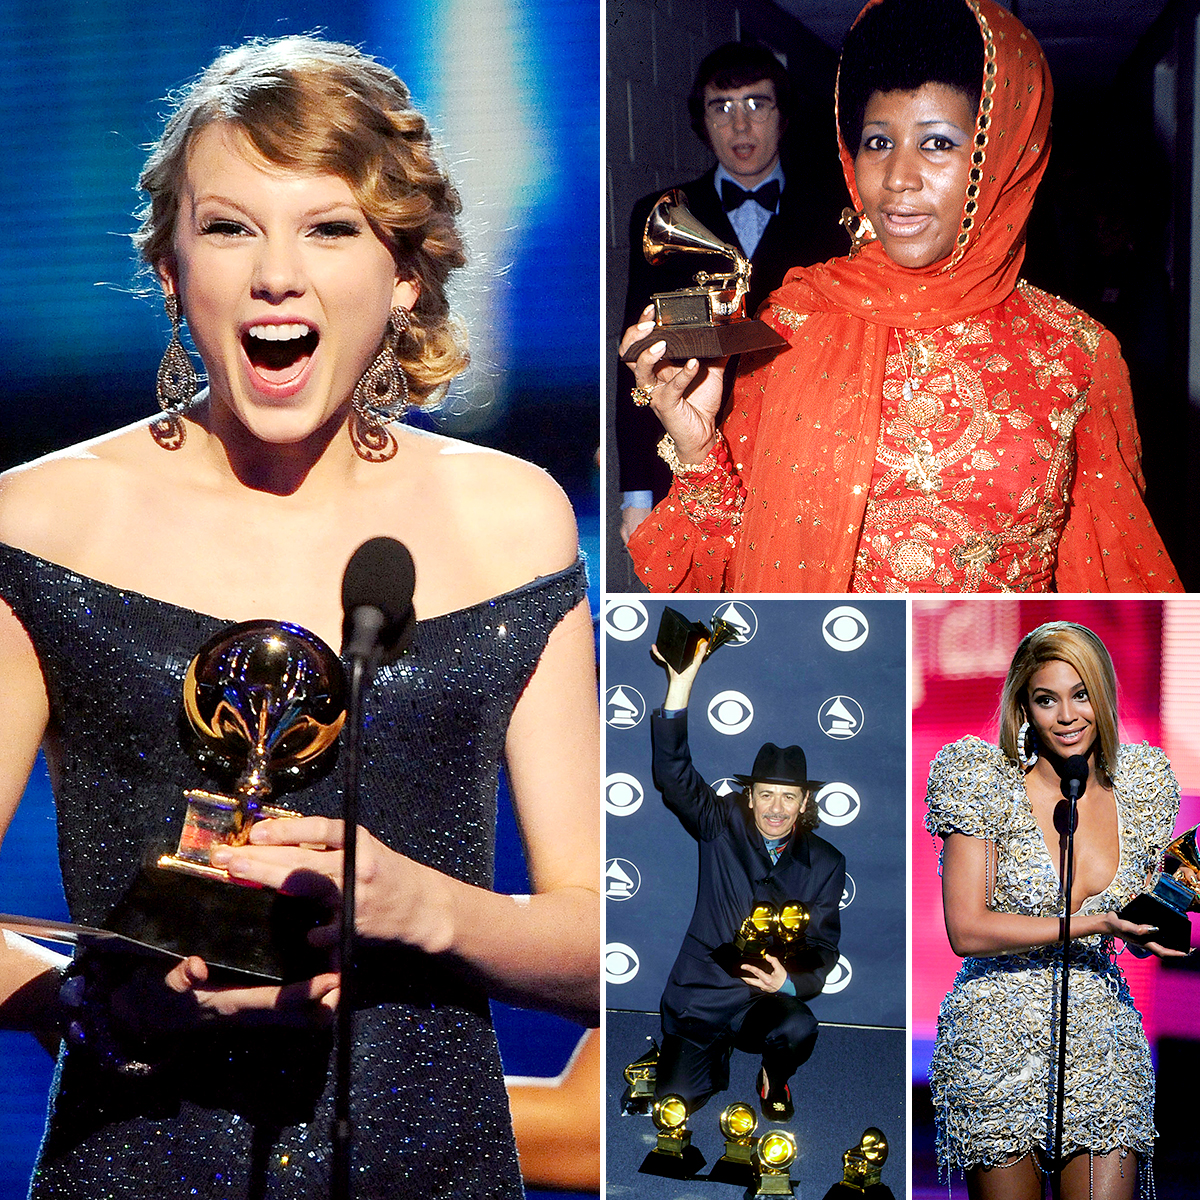 grammy-award-winners - With another year's worth of Grammys awarded , it's high time to check in on Grammy Award records and all the big names who have broken them over the course of the awards show's six-decade history. Taylor Swift skipped the 2019 Grammys on Sunday, February 10 — instead opting to attend the British Academy Film Awards with boyfriend Joe Alwyn — but she broke a Grammy record back in 2010 when she was still verging on the country side of pop music.